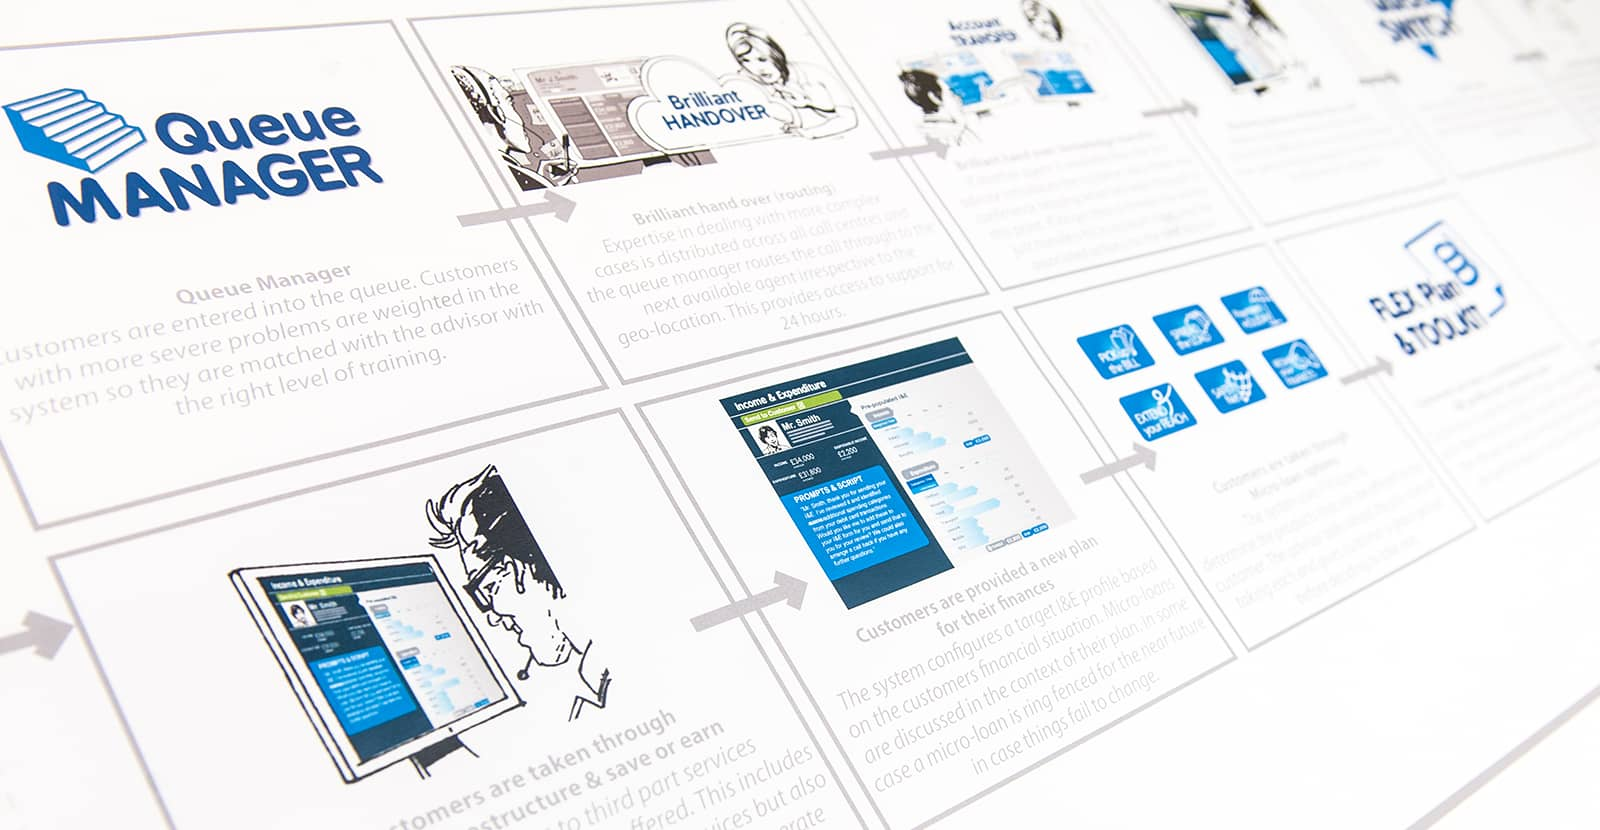 barclays bank product and service strategy development by engine